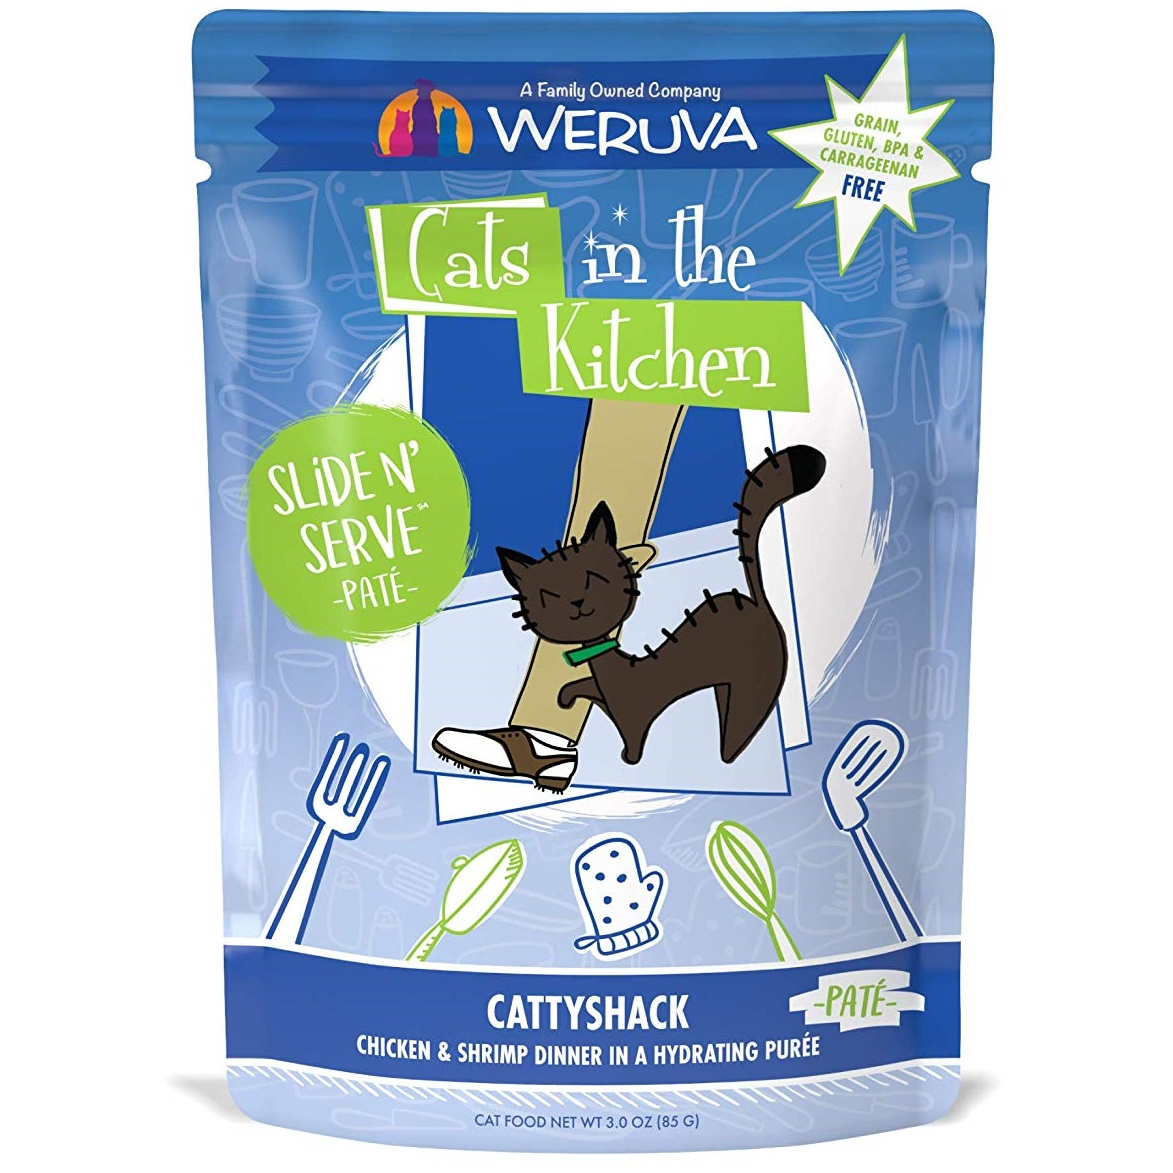 Weruva Cats In The Kitchen Pate Cattyshack Chicken & Shrimp Dinner in Puree Grain-Free Wet Cat Food, 3-oz pouch